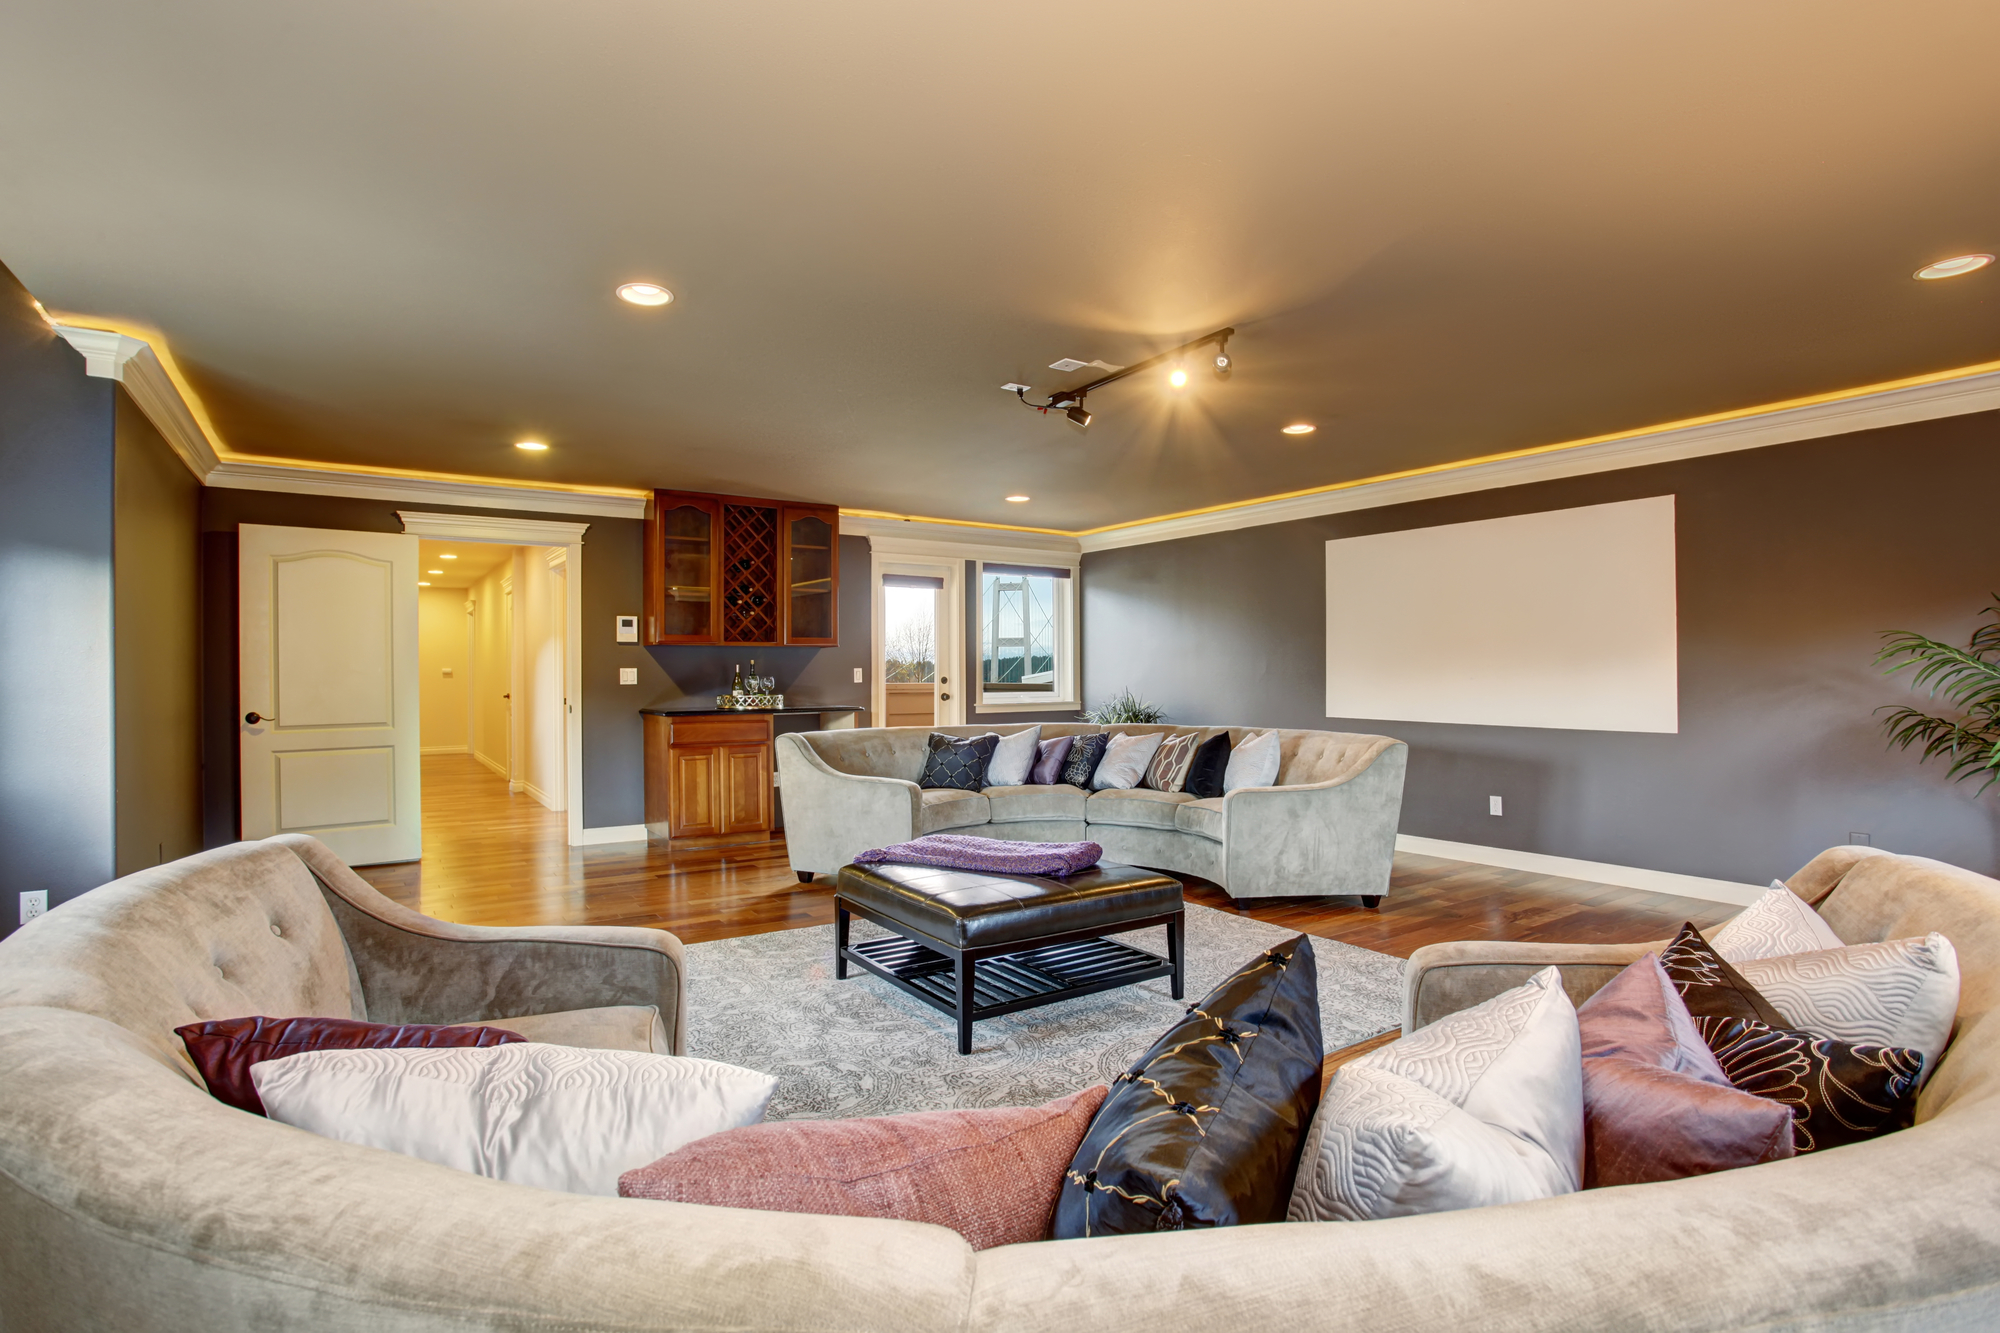 3 Tips for Setting Up a Home Theater - Custom Electronics Group - The  Village of Indian Hill   NearSay